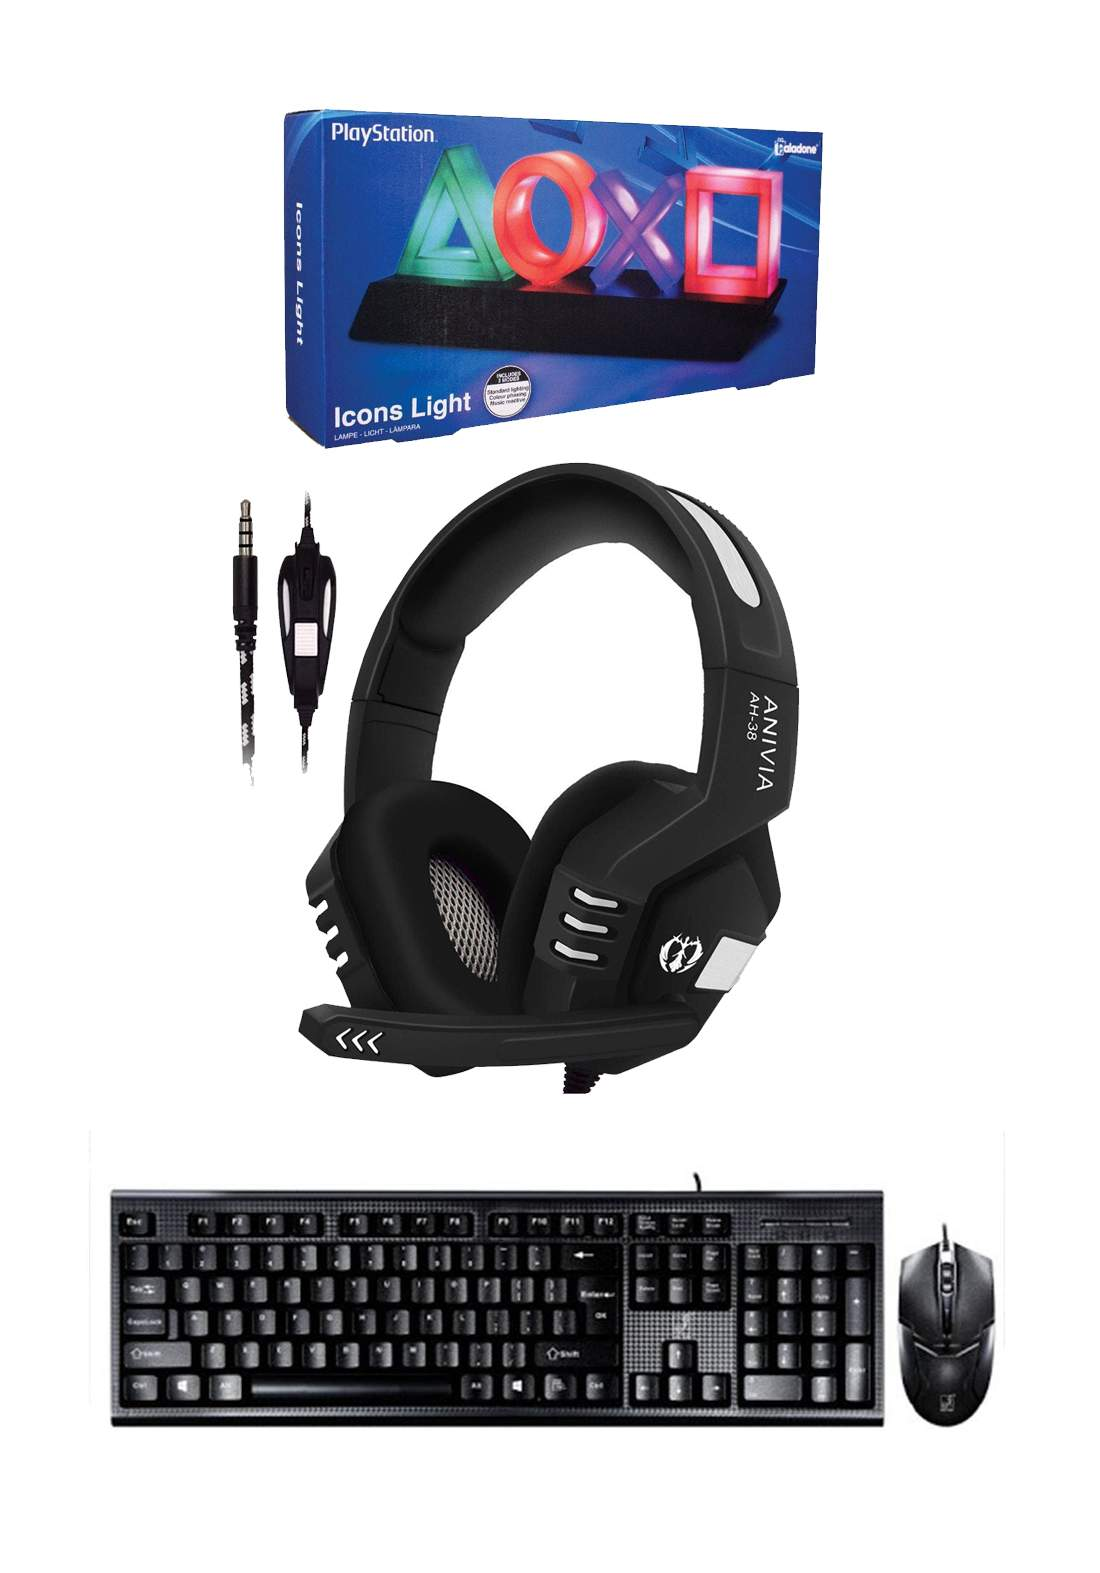 Set of Anivia AH38 Gaming Headset  & Keyboard And Mouse Q9 Set Wired & Playstation Icons Light    بكج من سماعة وكيبورد وماوس وايقونات بلاستيشن